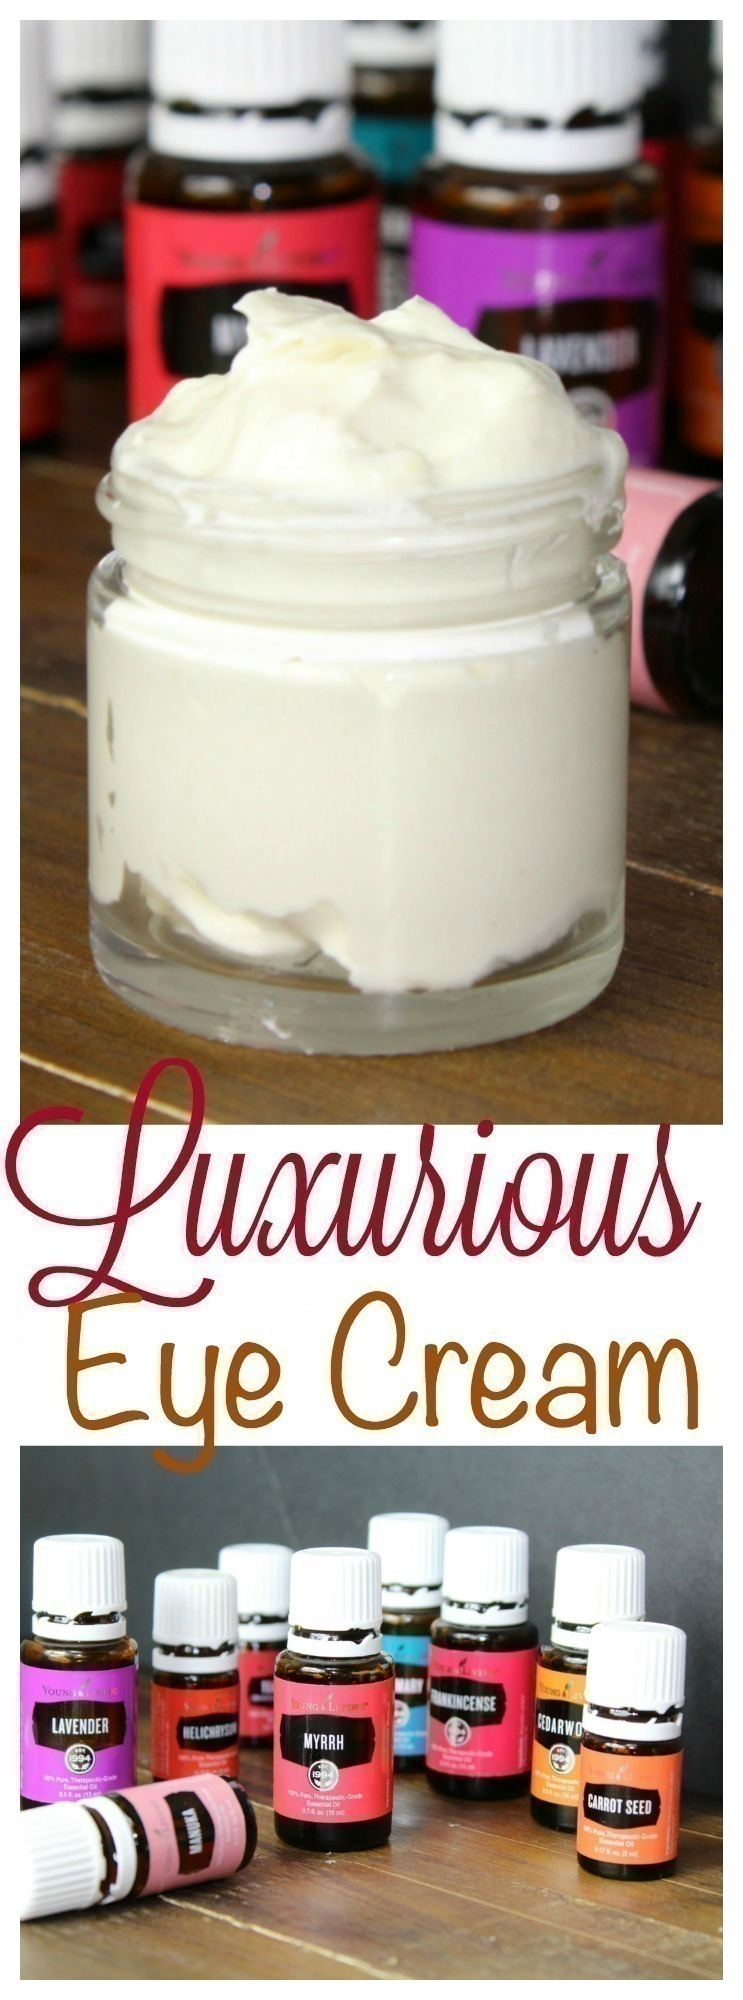 This luxurious eye cream is incredibly easy to make - just two main ingredients and your choice of essential oils. It's smooth, rich, and incredibly wonderful for your skin!